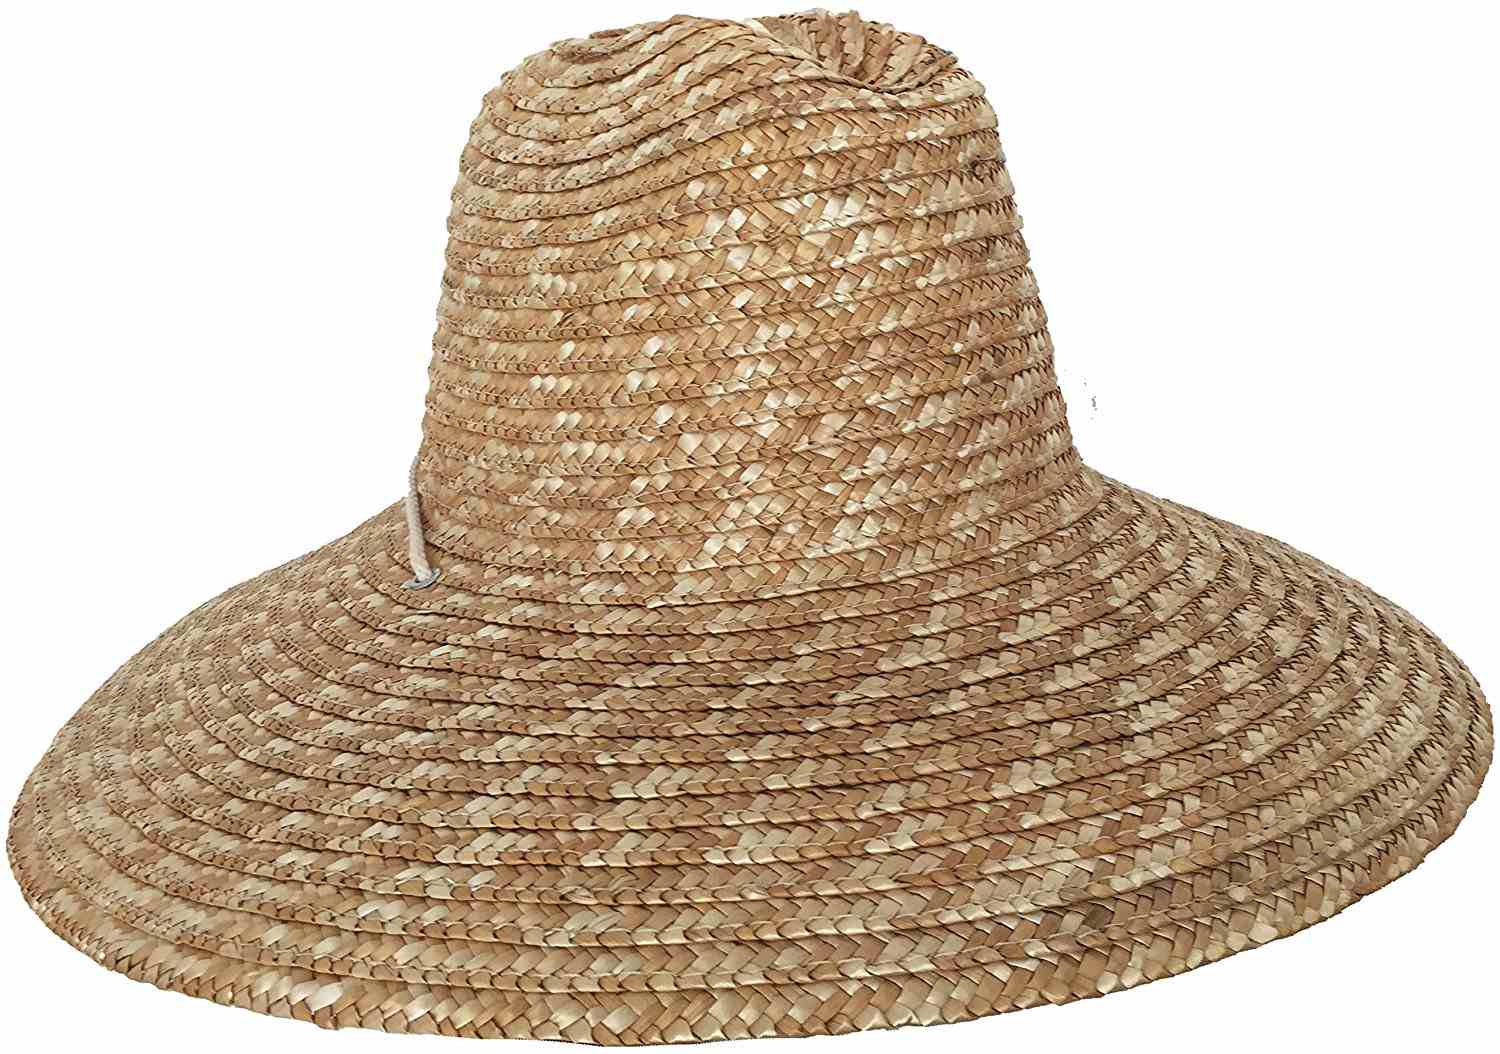 Super Wide Brim Lifeguard Hat Straw Beach Sun Summer Surf Safari Gardening  UPF 0194f61b1d97